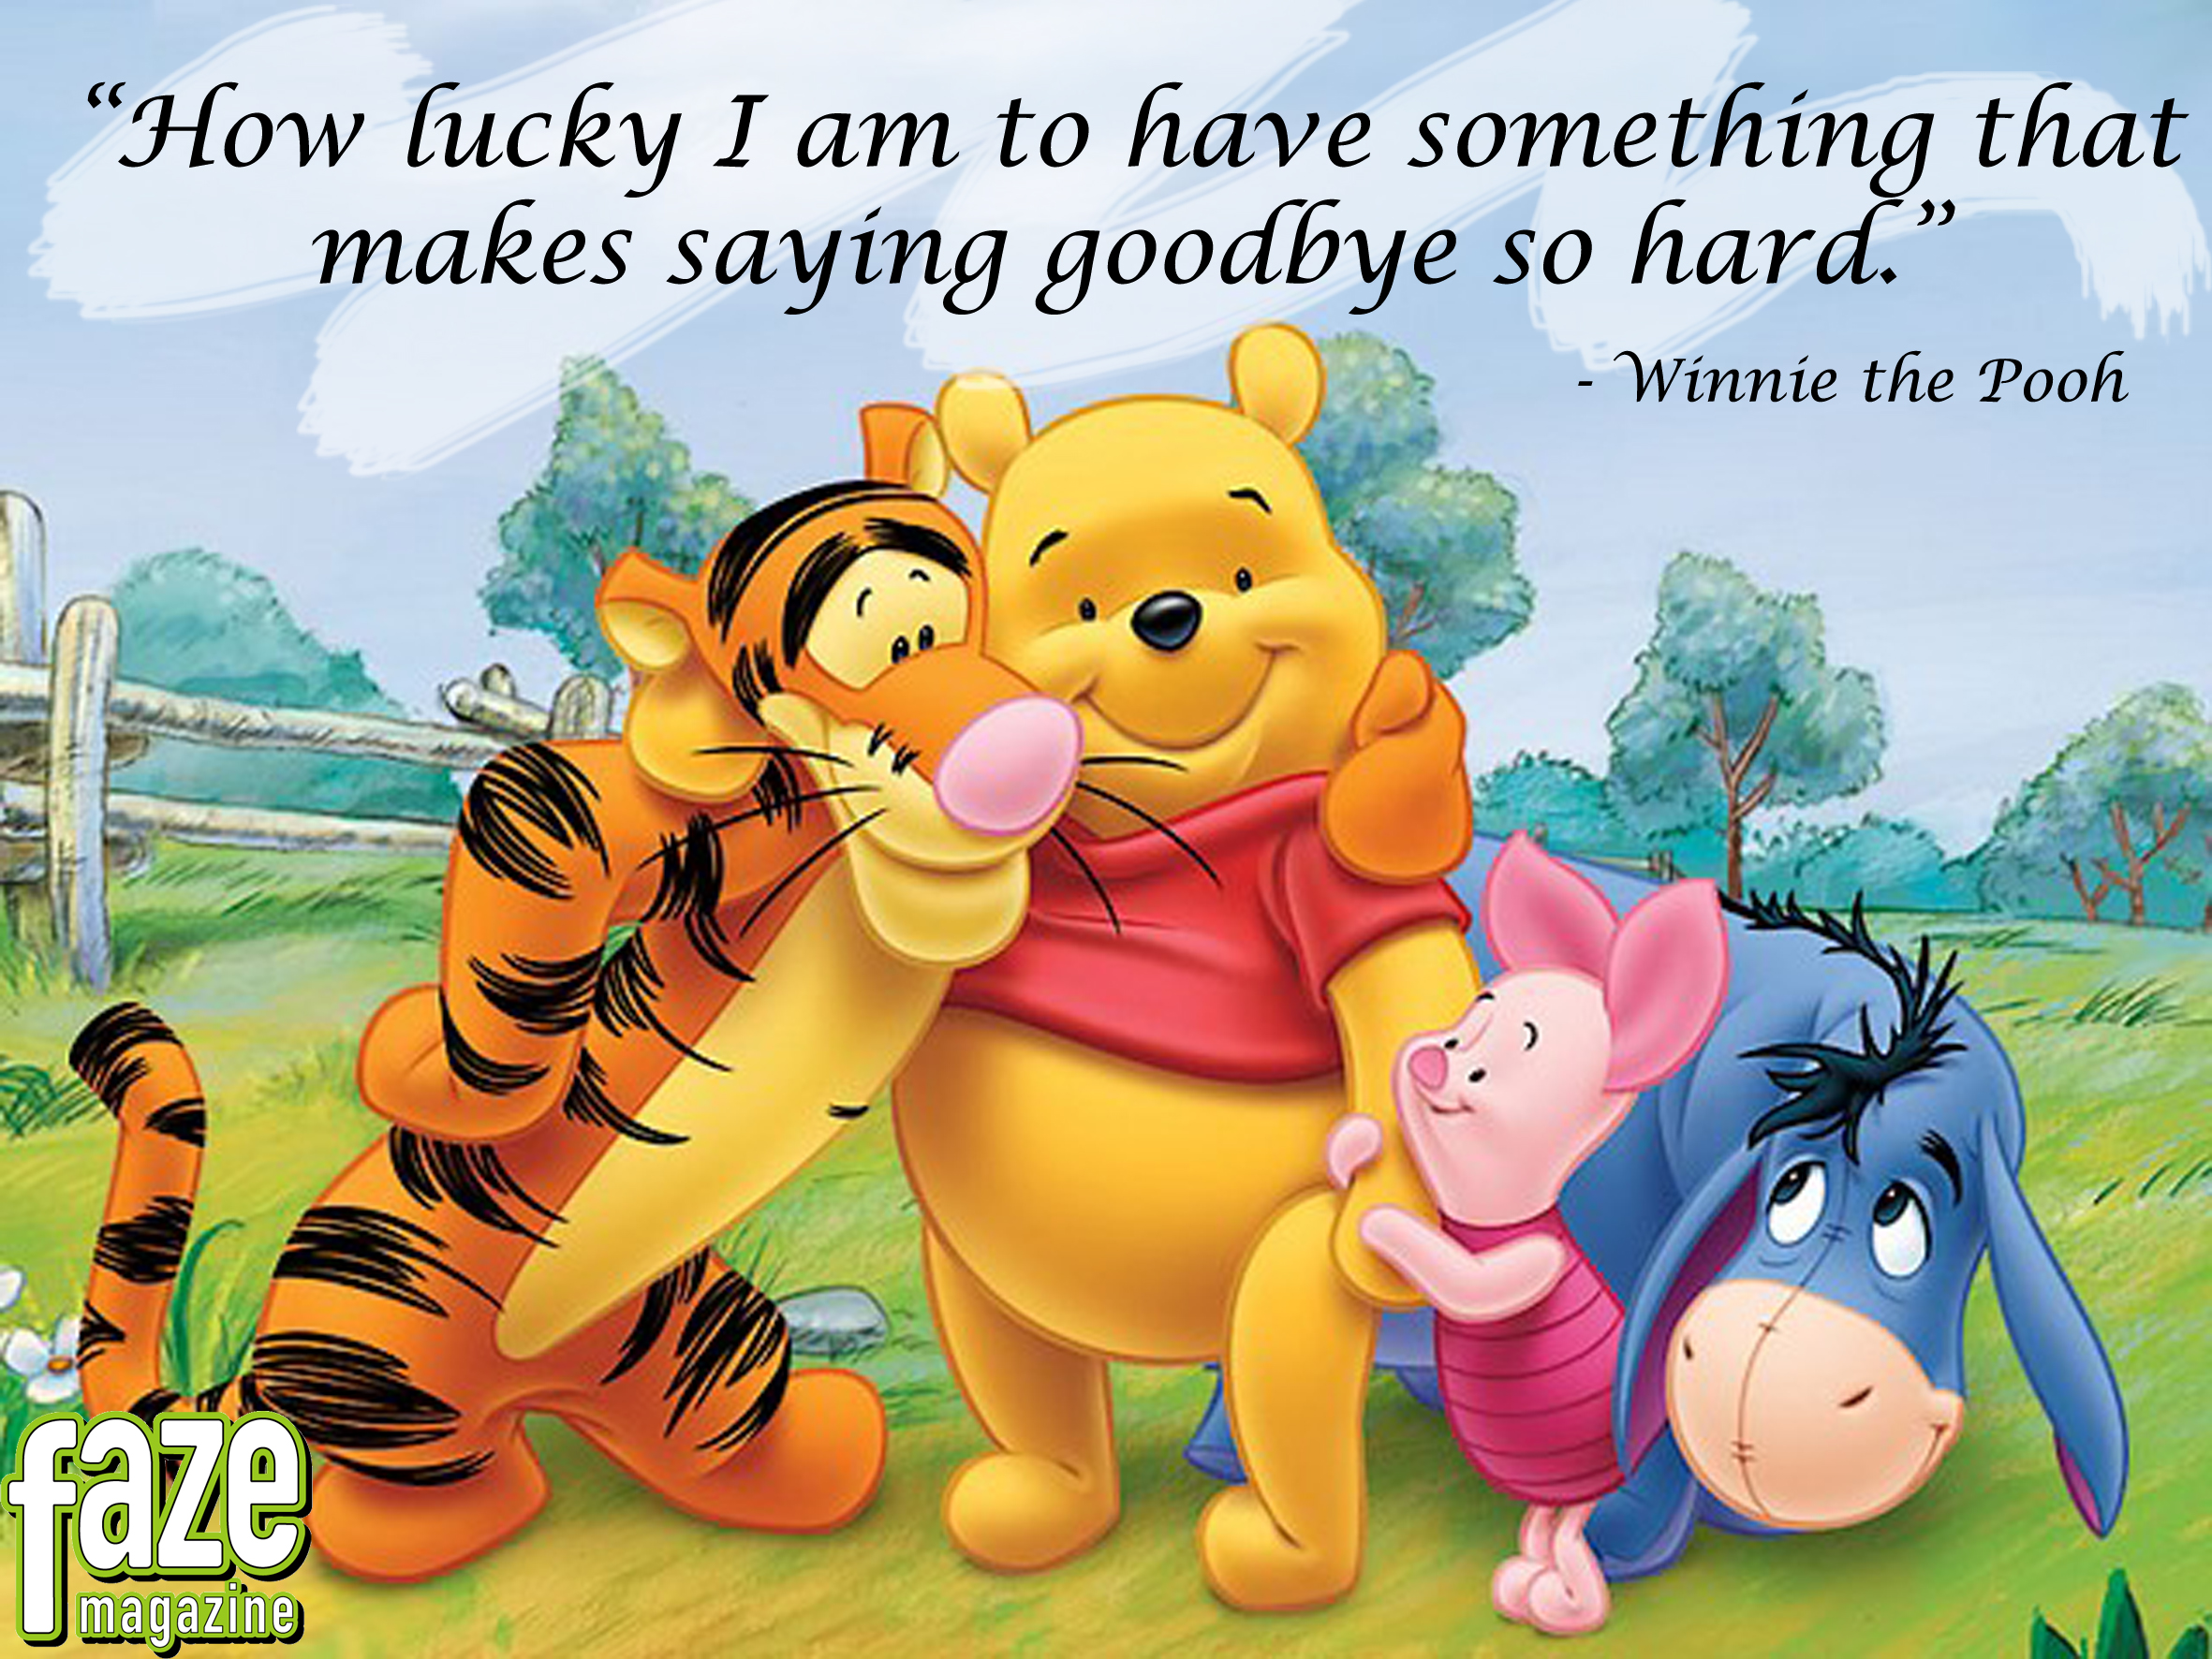 Pooh Quotes About Friendship 10 'winnie The Pooh' Quotes That'll Fill Your Heart With Love  Faze